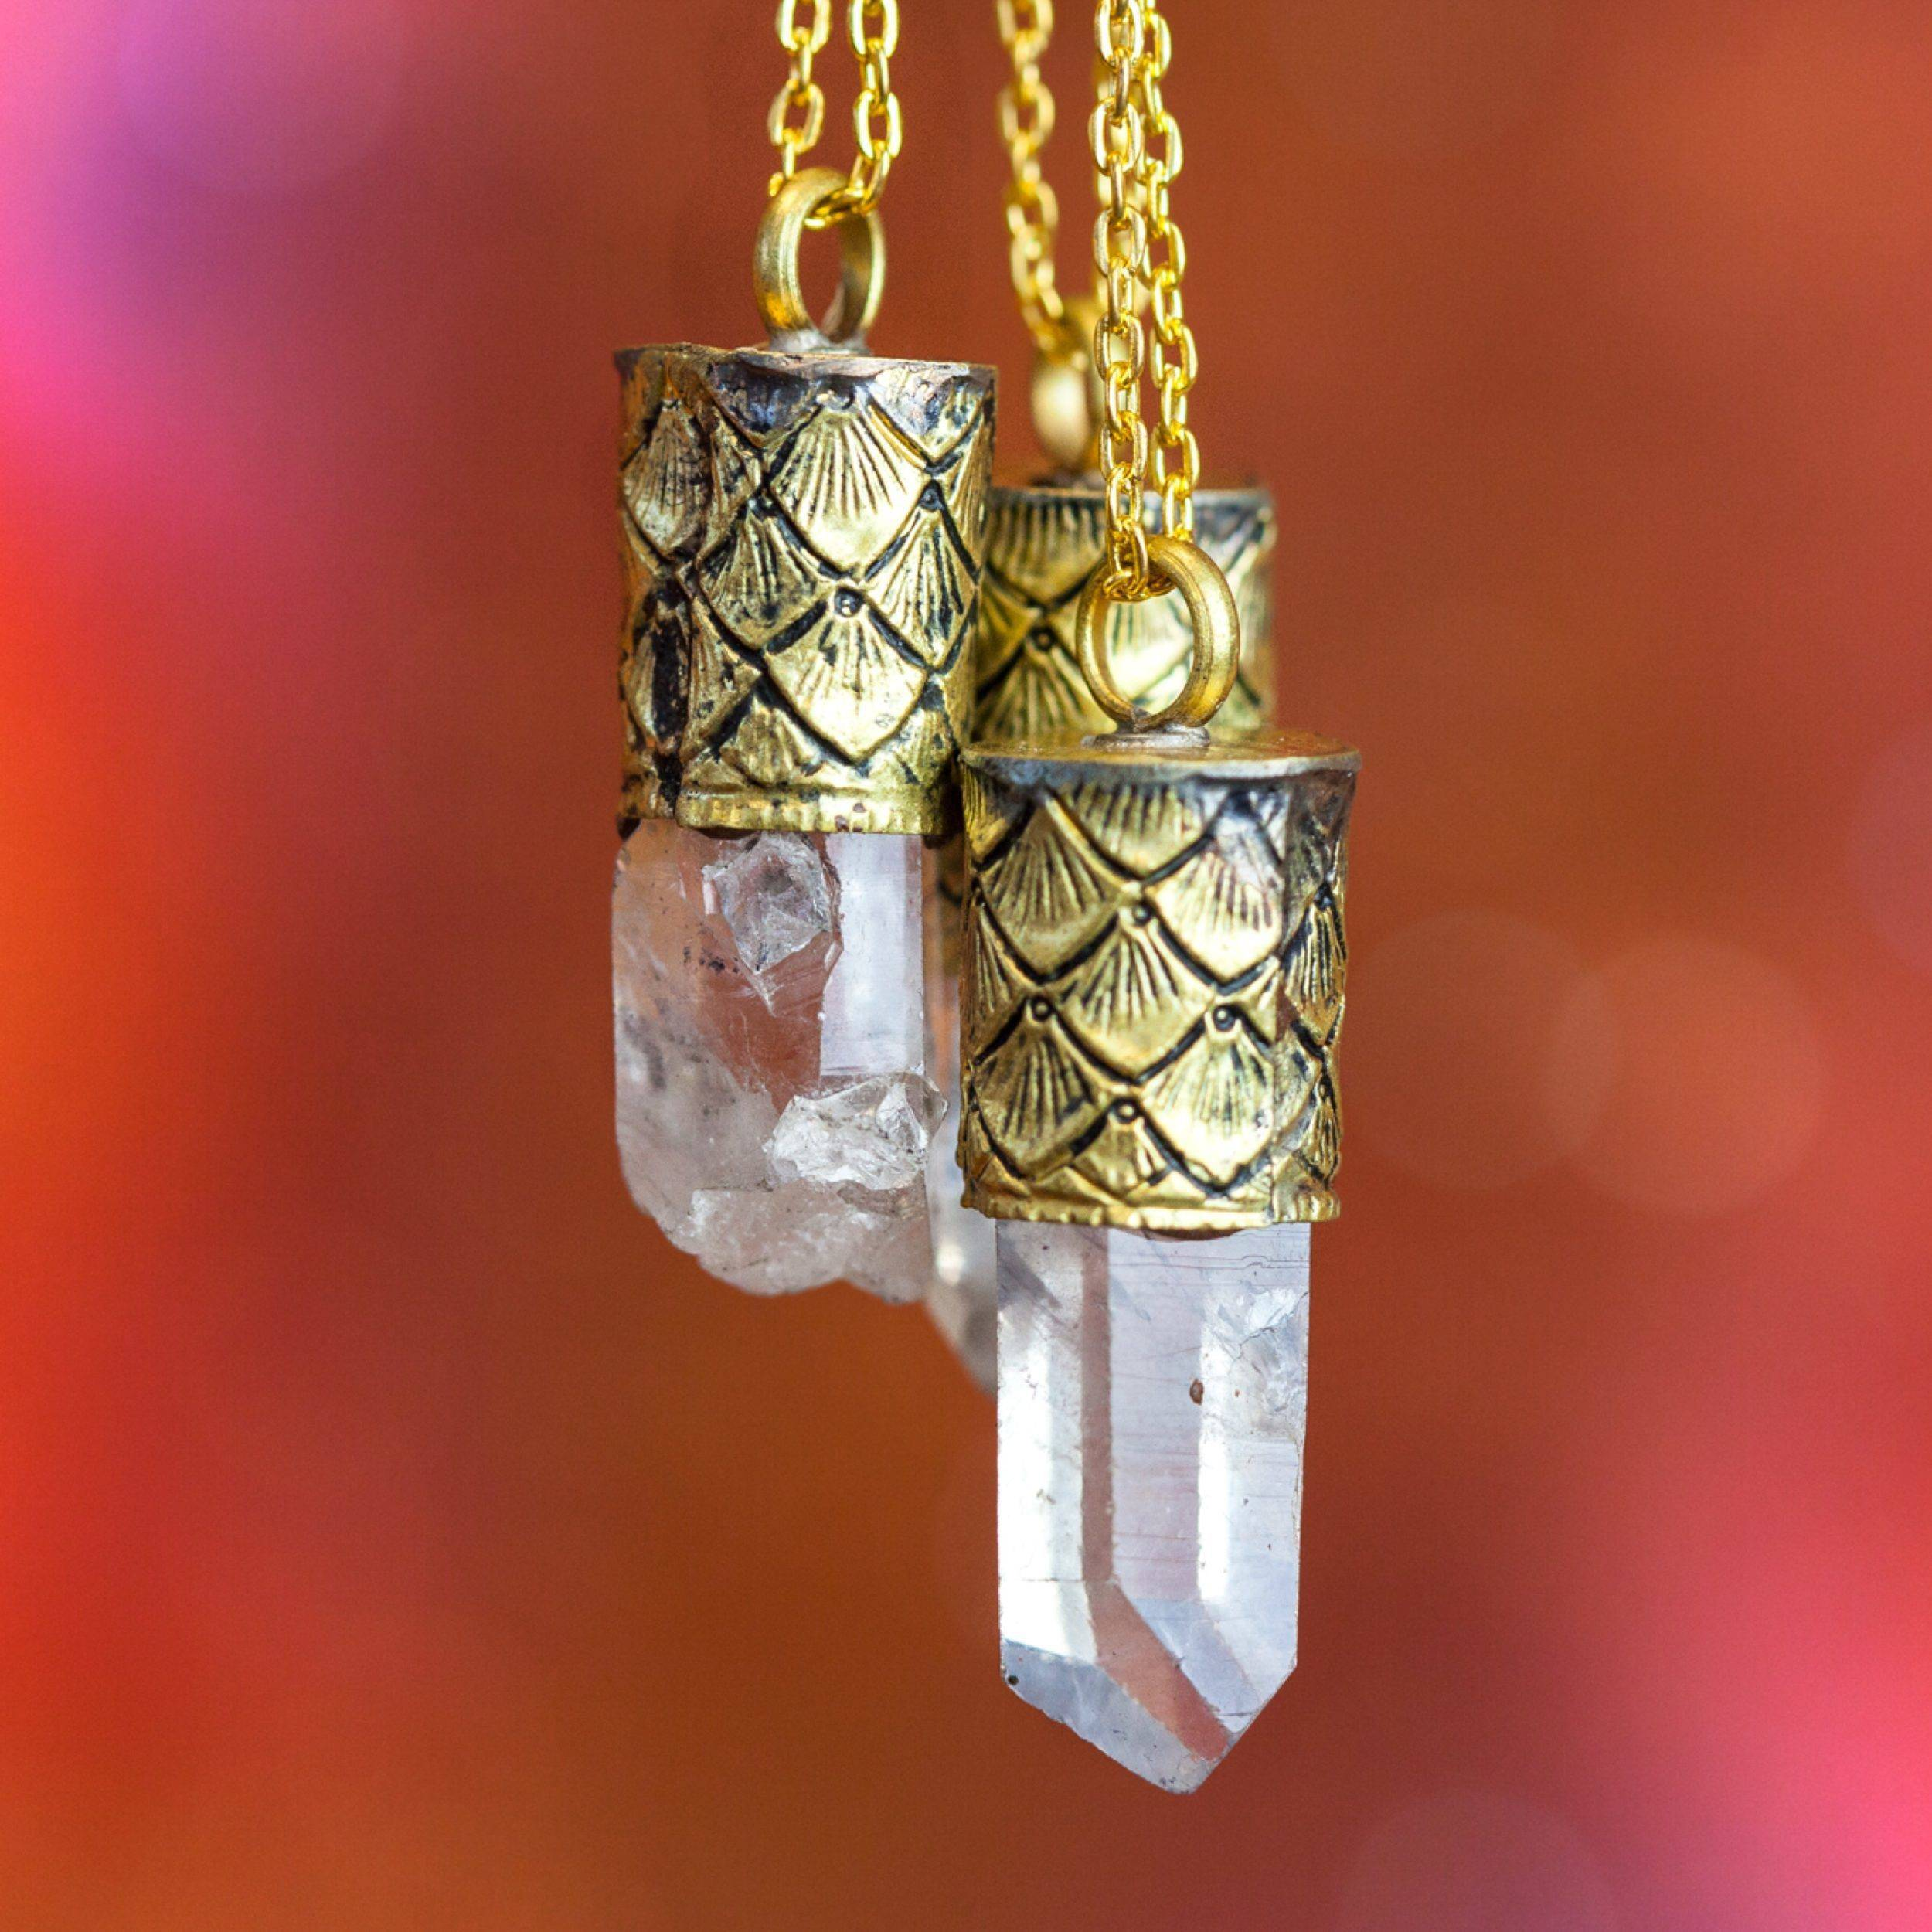 Himalayan_Quartz_Pendant_1of3_11_2